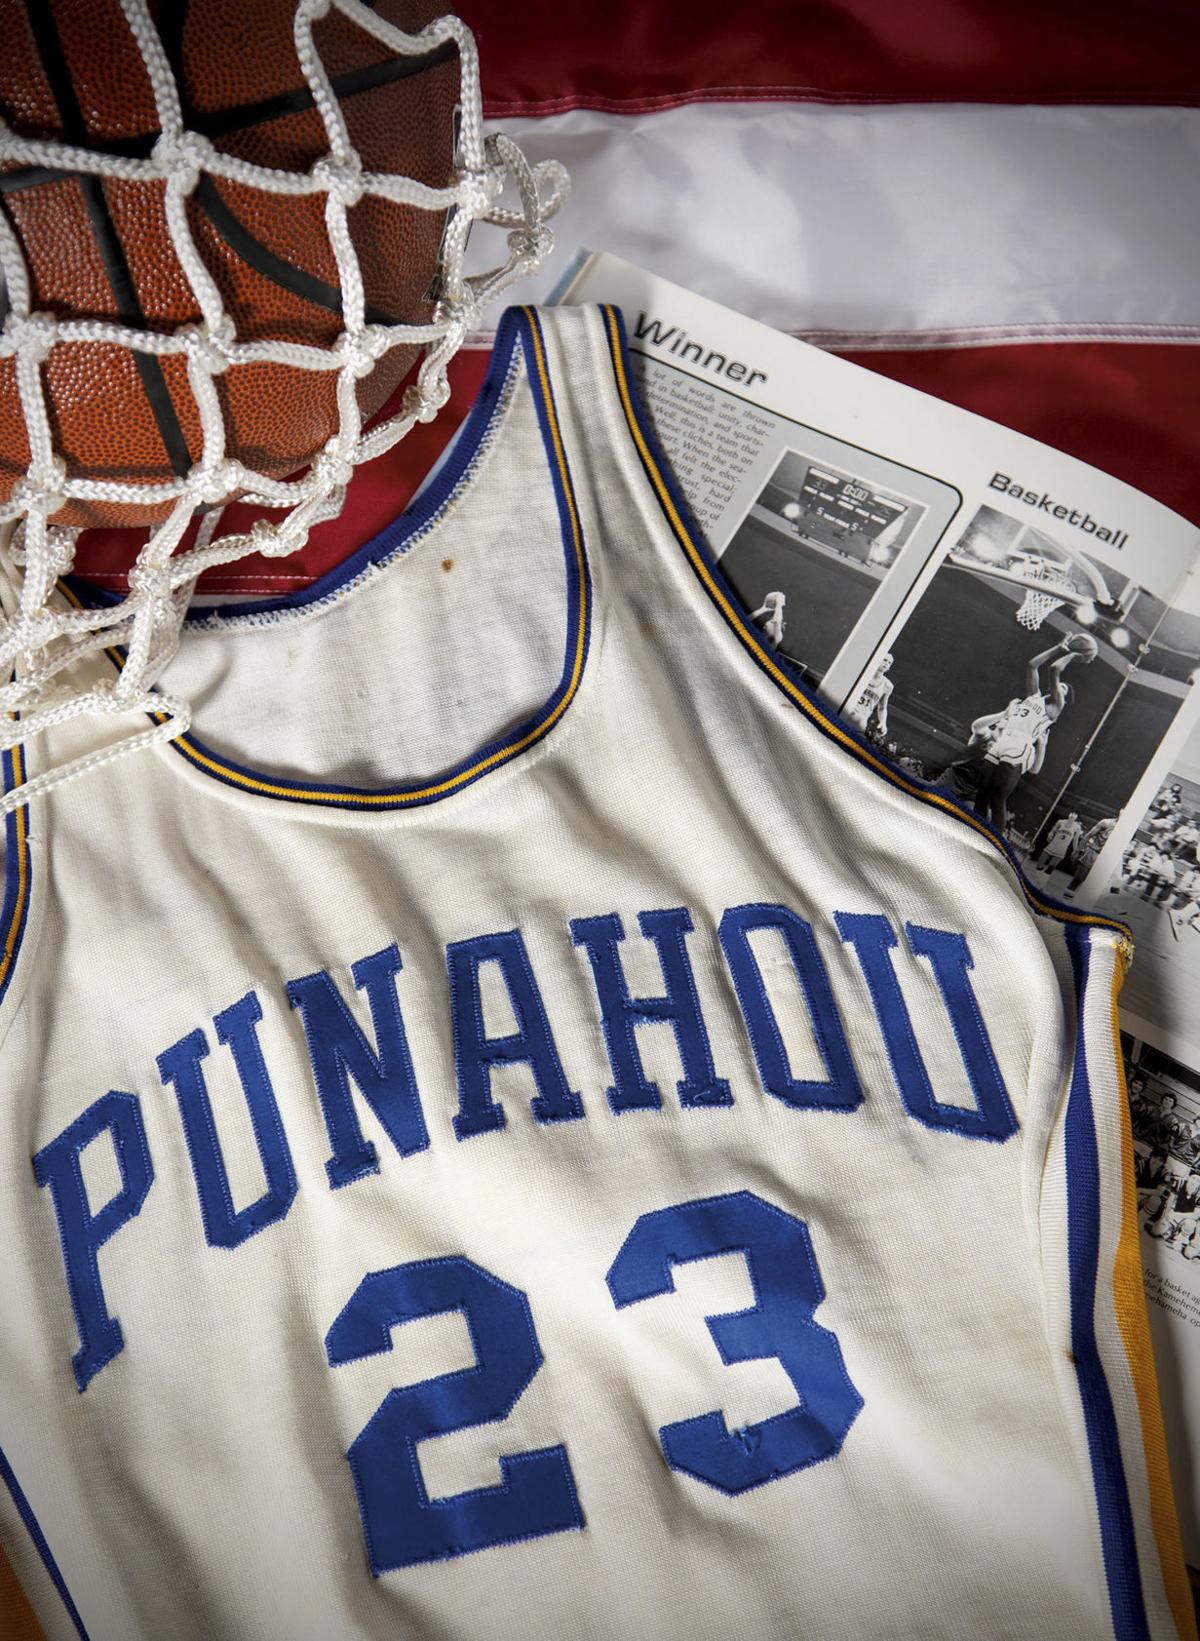 This undated photo released by Heritage Auctions shows a Punahou High School basketball jersey worn by former student Barack Obama. Bidding was drawing to a close Friday for the basketball No. 23 Punahou School jersey believed to have been worn by Obama. He wore that number during the 1978-79 school year in Honolulu. — Heritage Auctions via AP